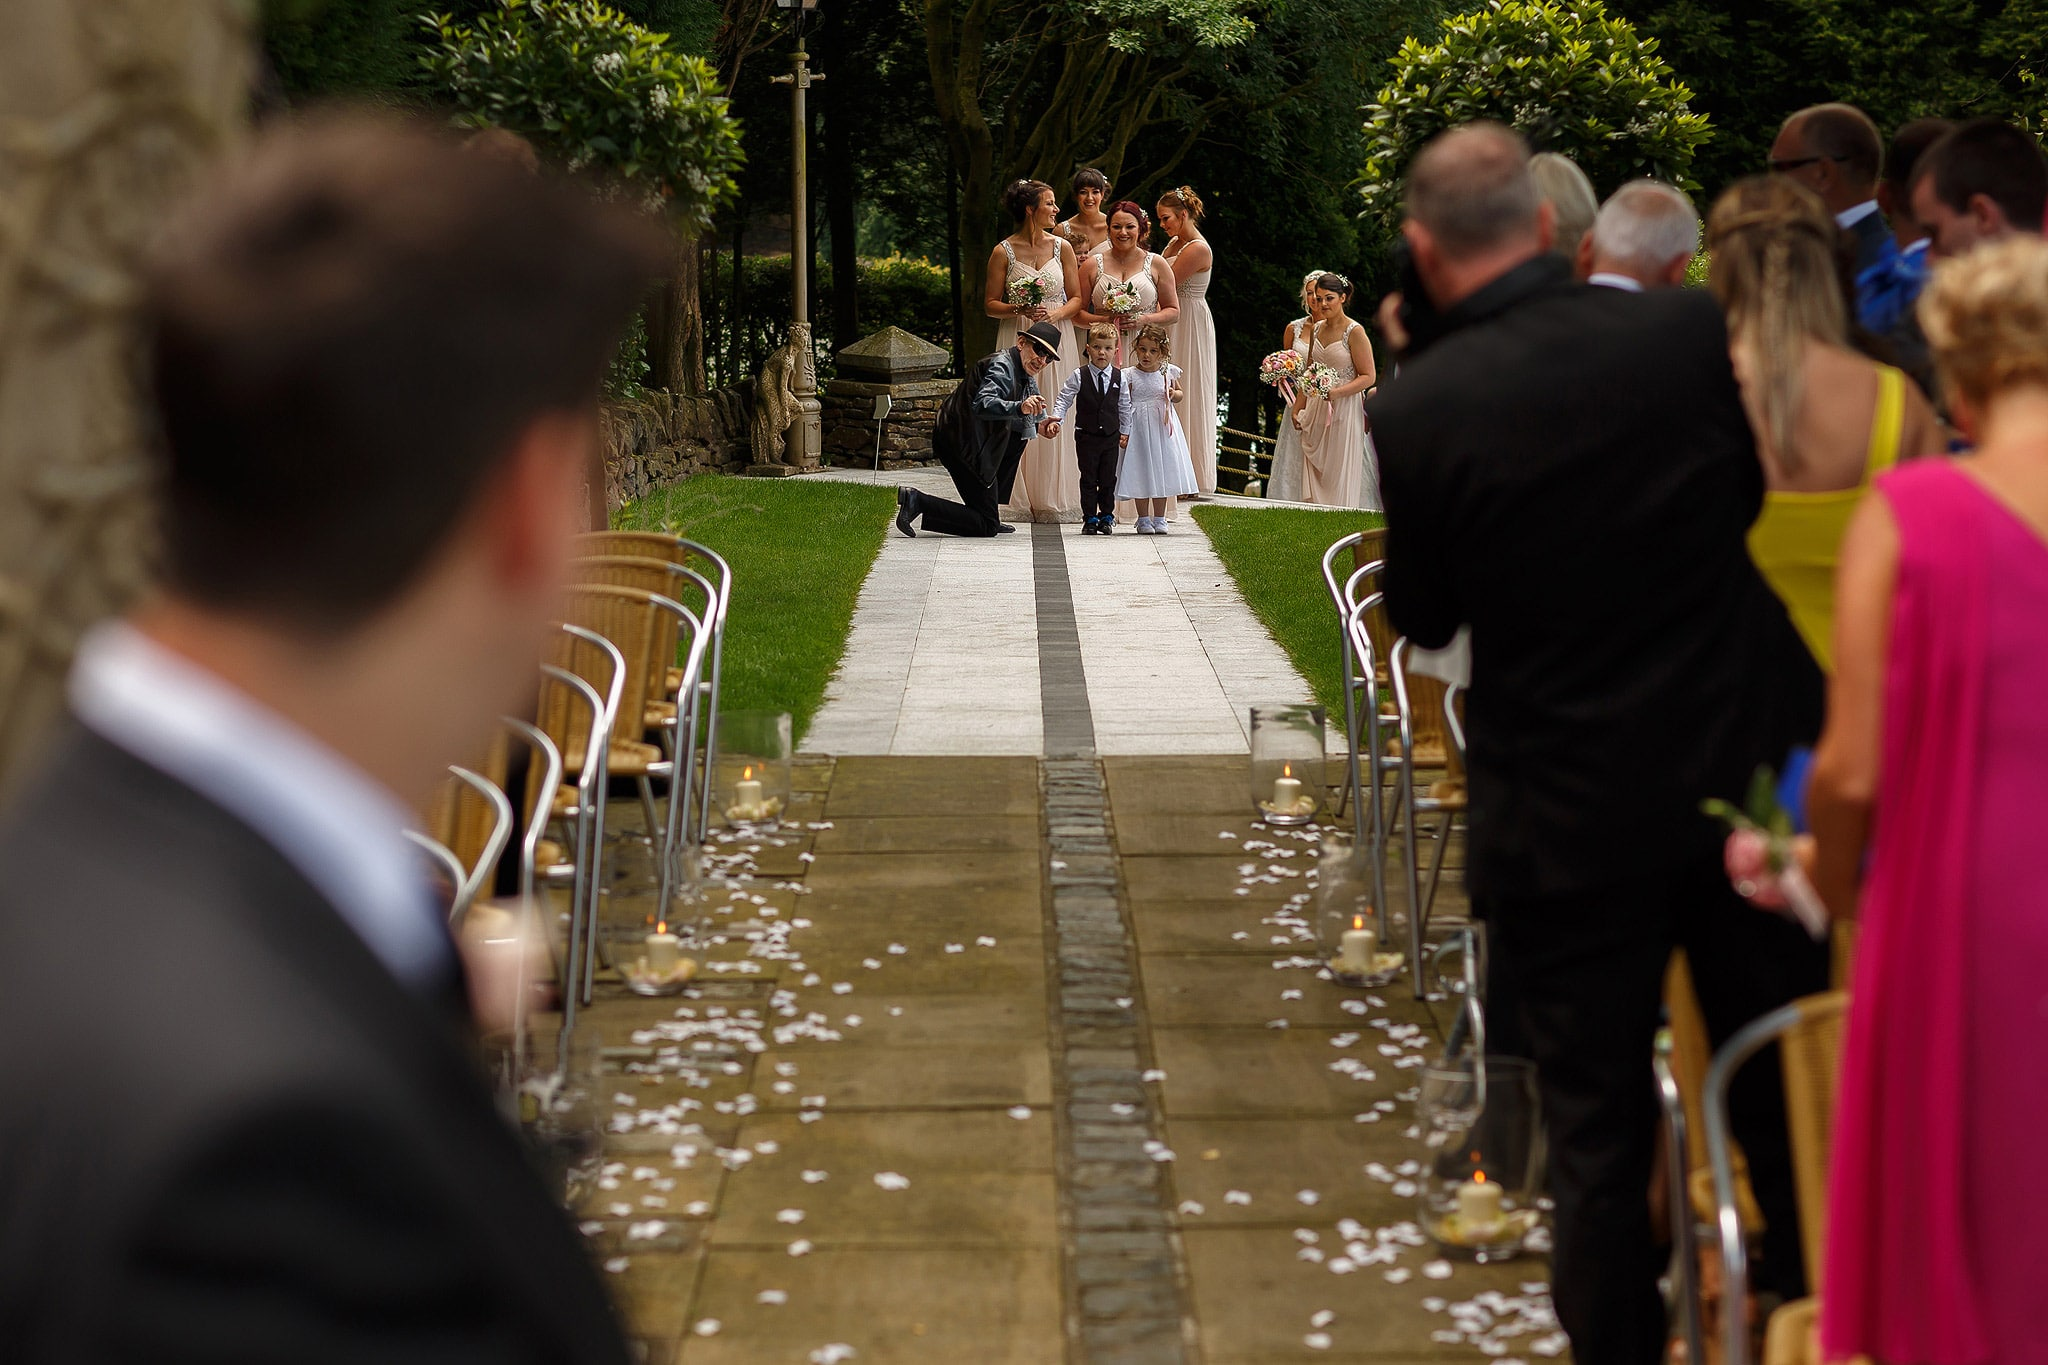 Bridal party walking down the aisle for outdoor wedding at Saddleworth Hotel